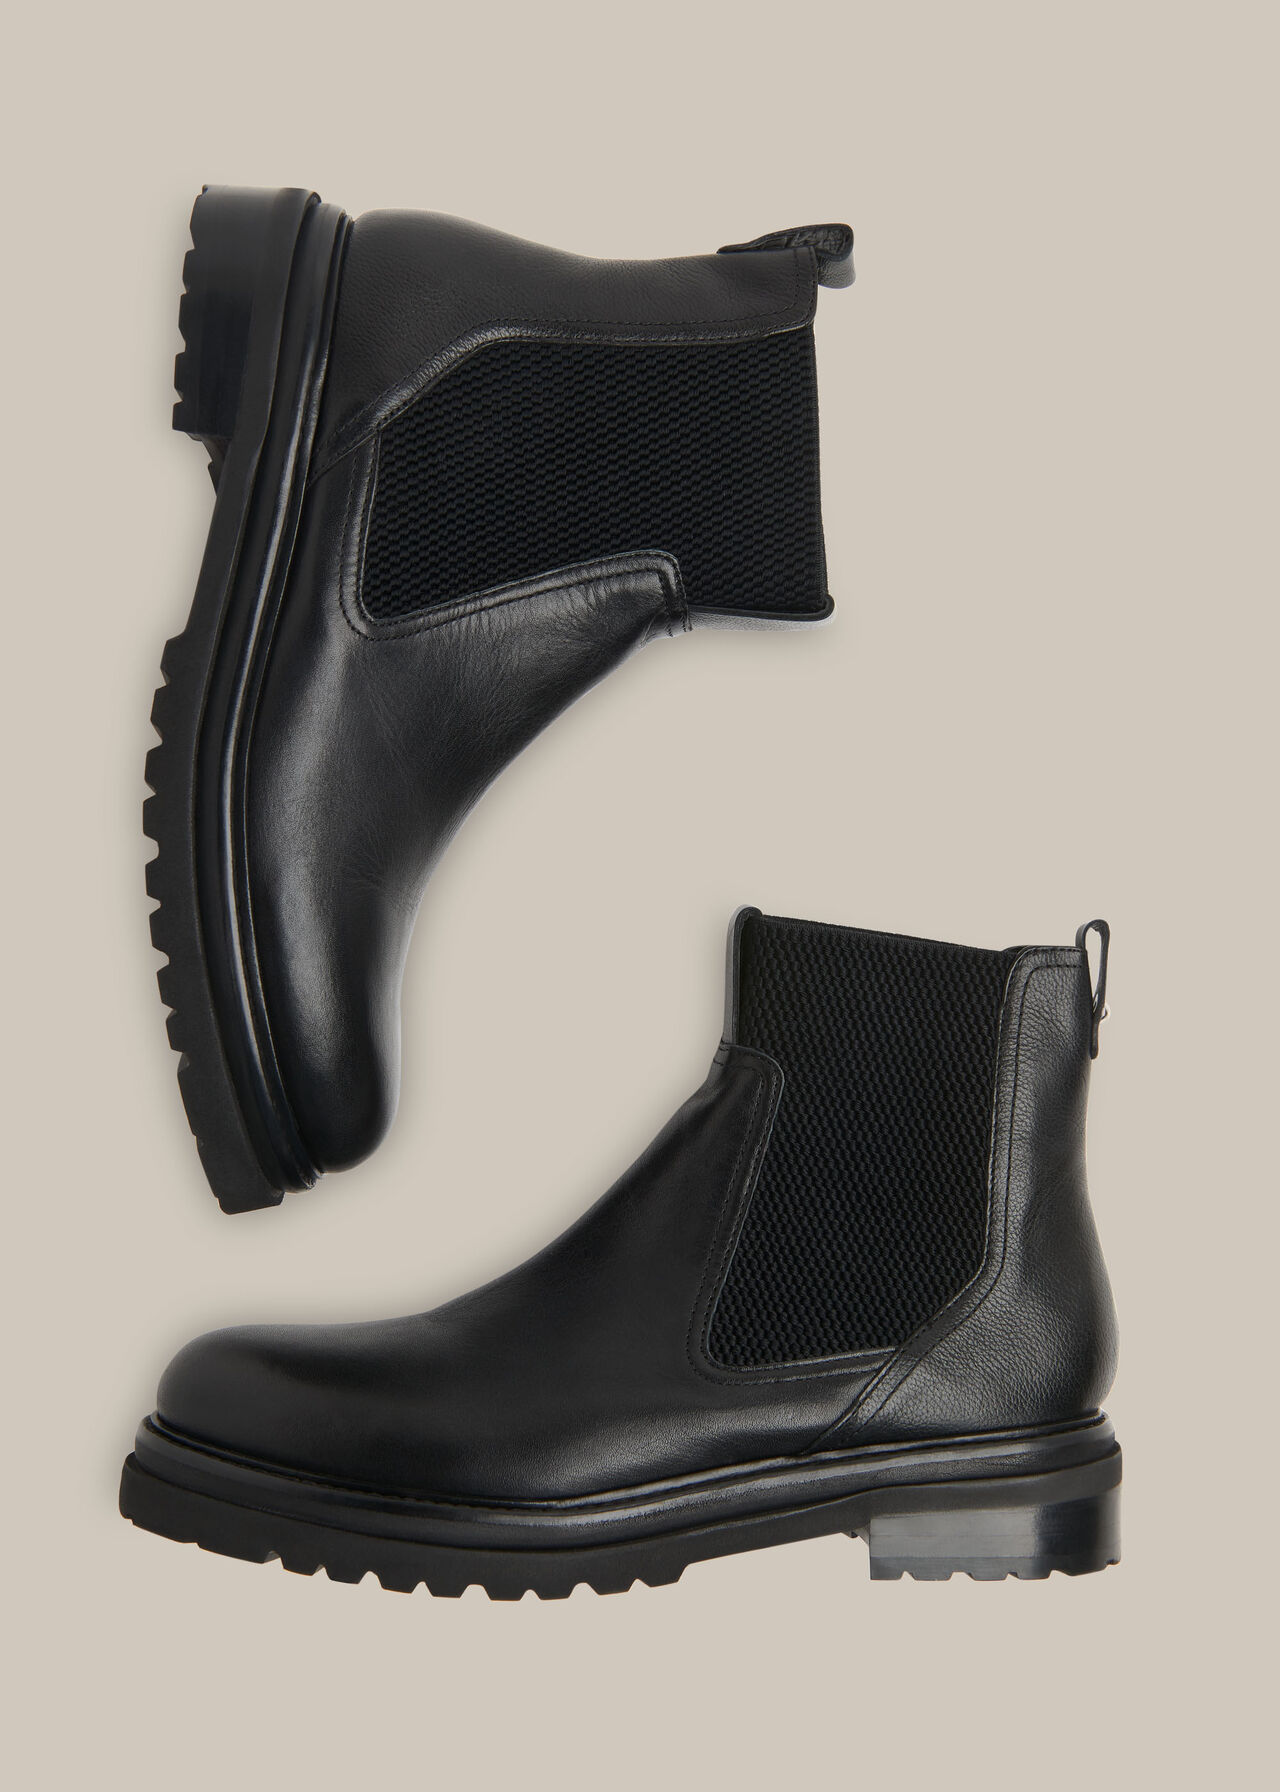 Elson Elasticated Chelsea Boot